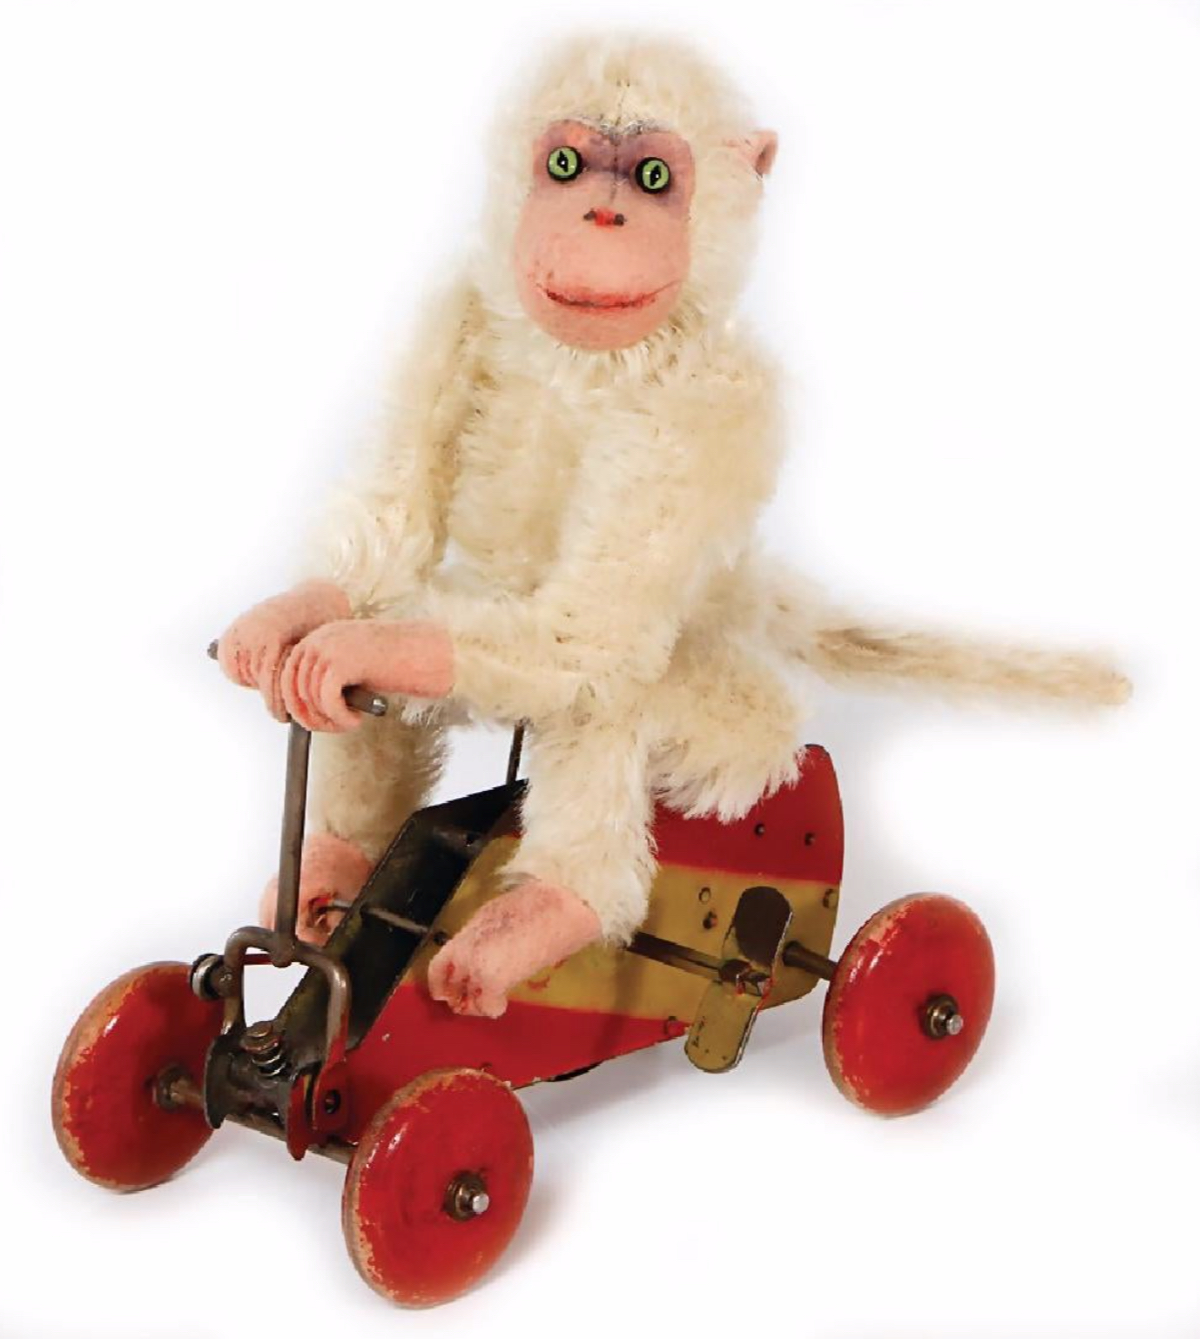 Steiff mechanical chimp on wheels that sold for about $4,000 through Ladenburger Spielzeugauktion GmbH; image from Liveauctioneers.